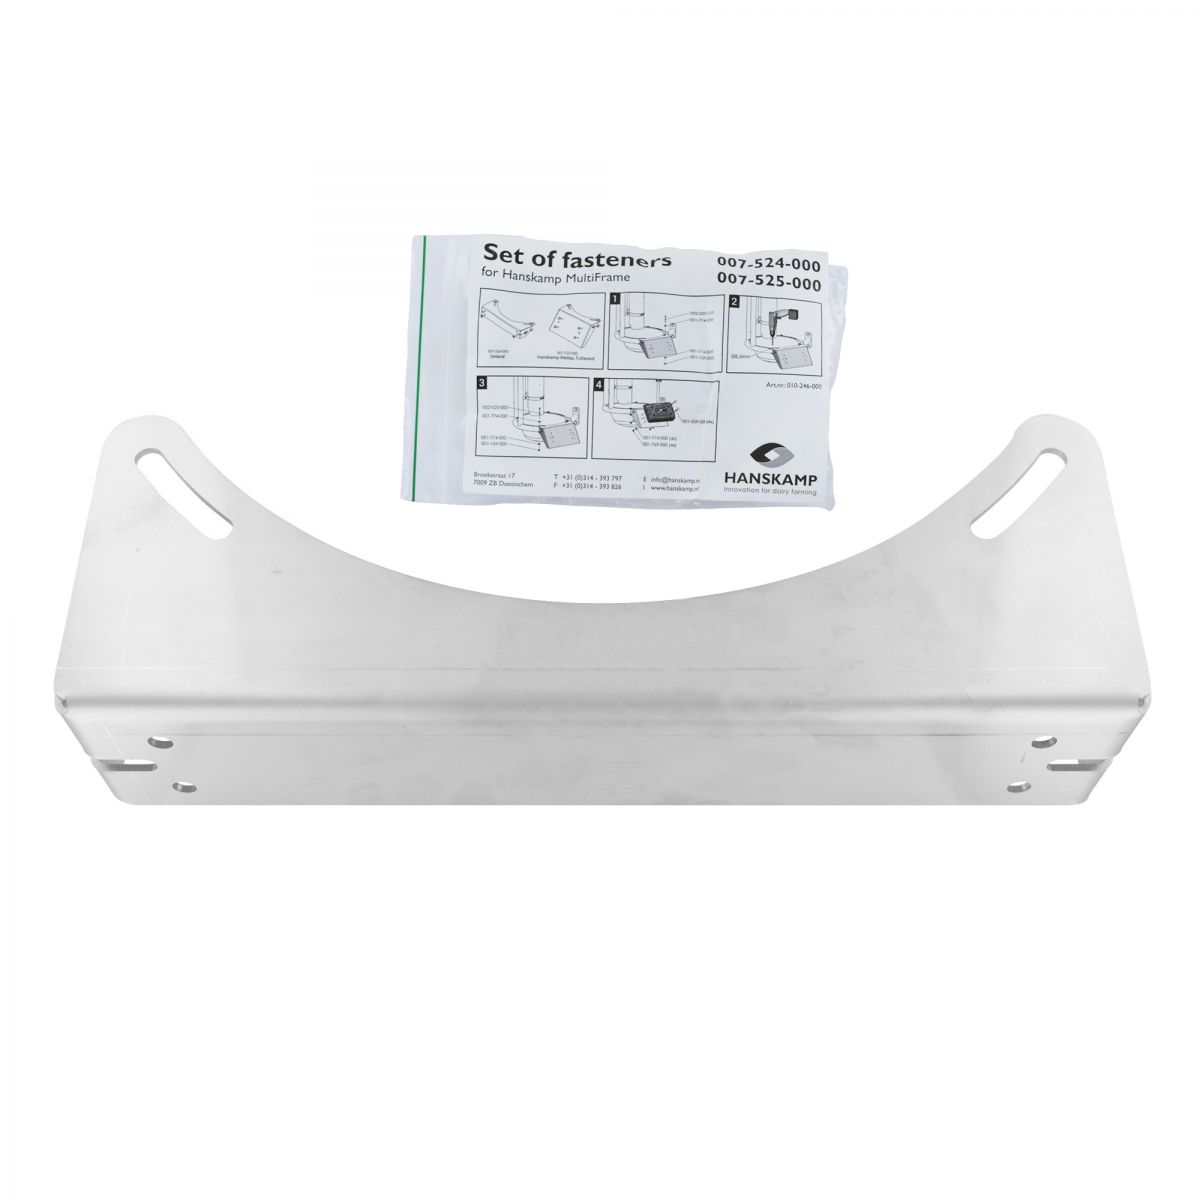 support for reader 3 mm aisi304 incl mounting material for multiframe suitable for multiframe with delaval reader